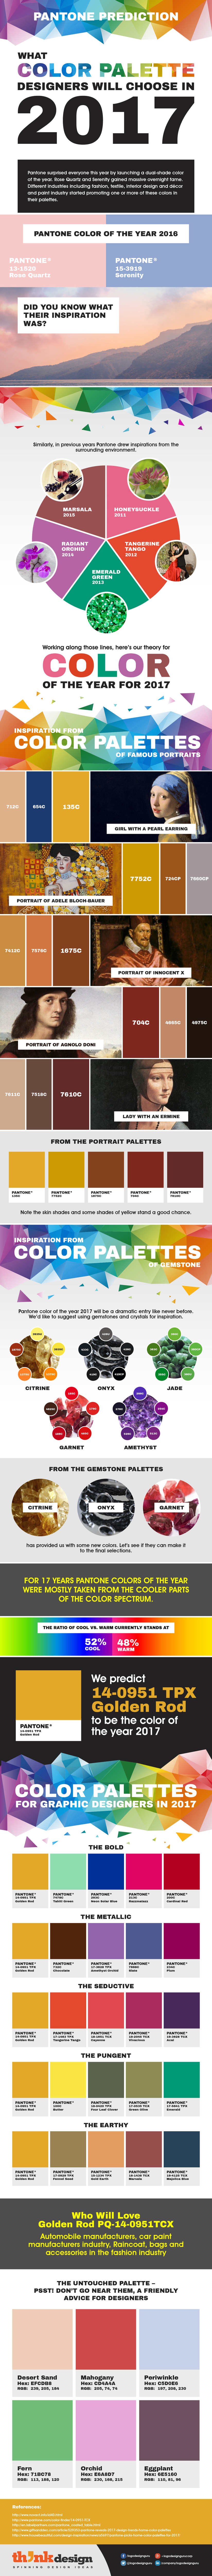 infographic pantone prediction of color palettes for designers in